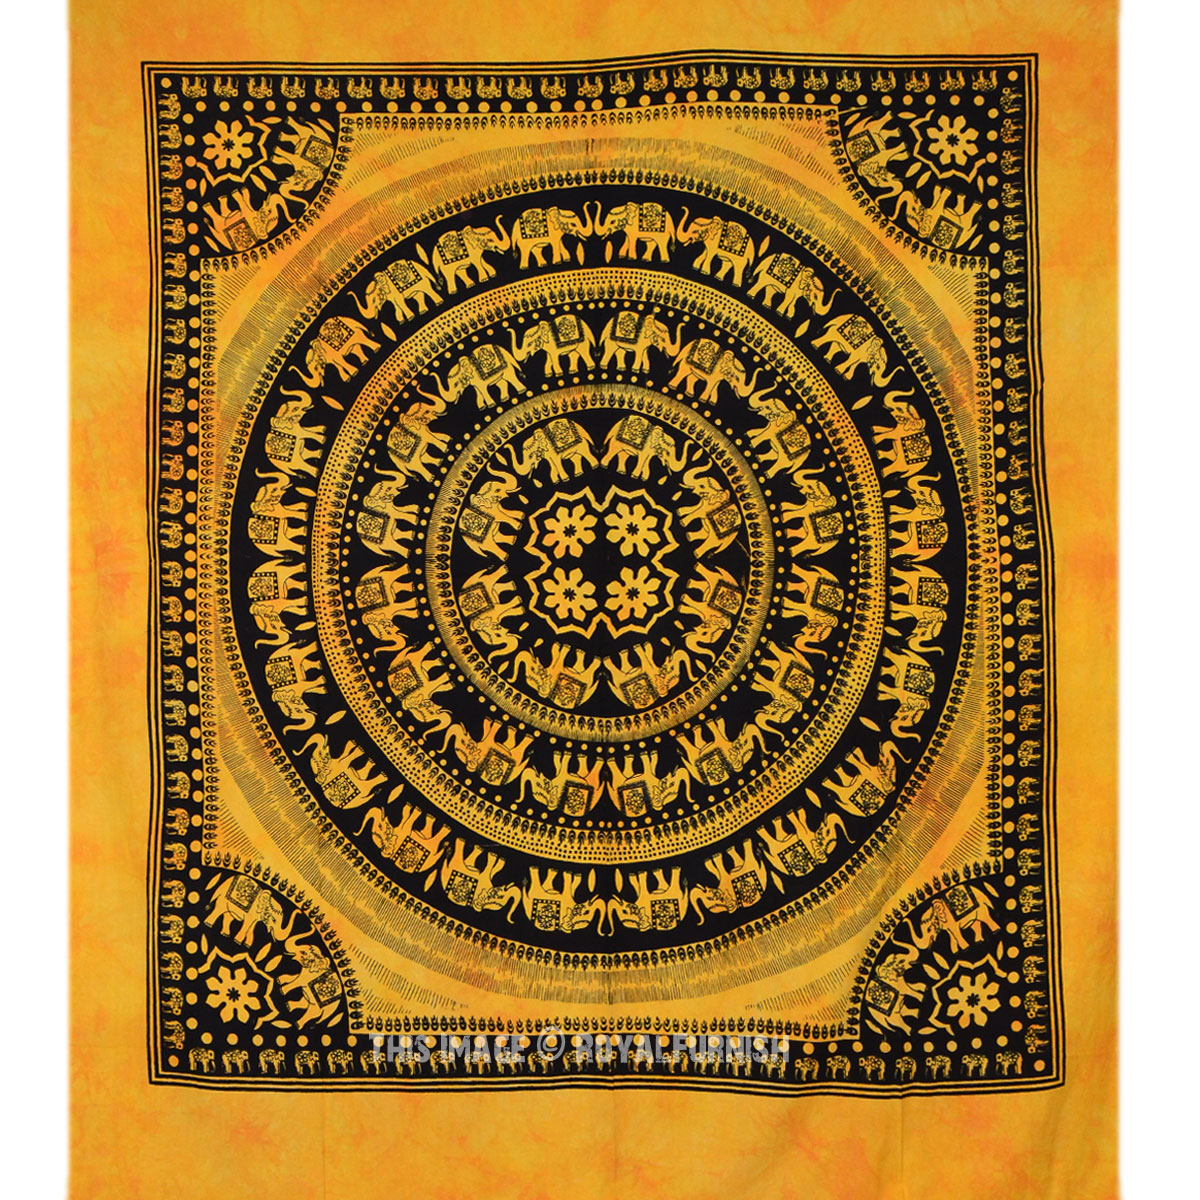 Yellow Indian Elephant Mandala Hippie  Tie Dye Dorm Decor